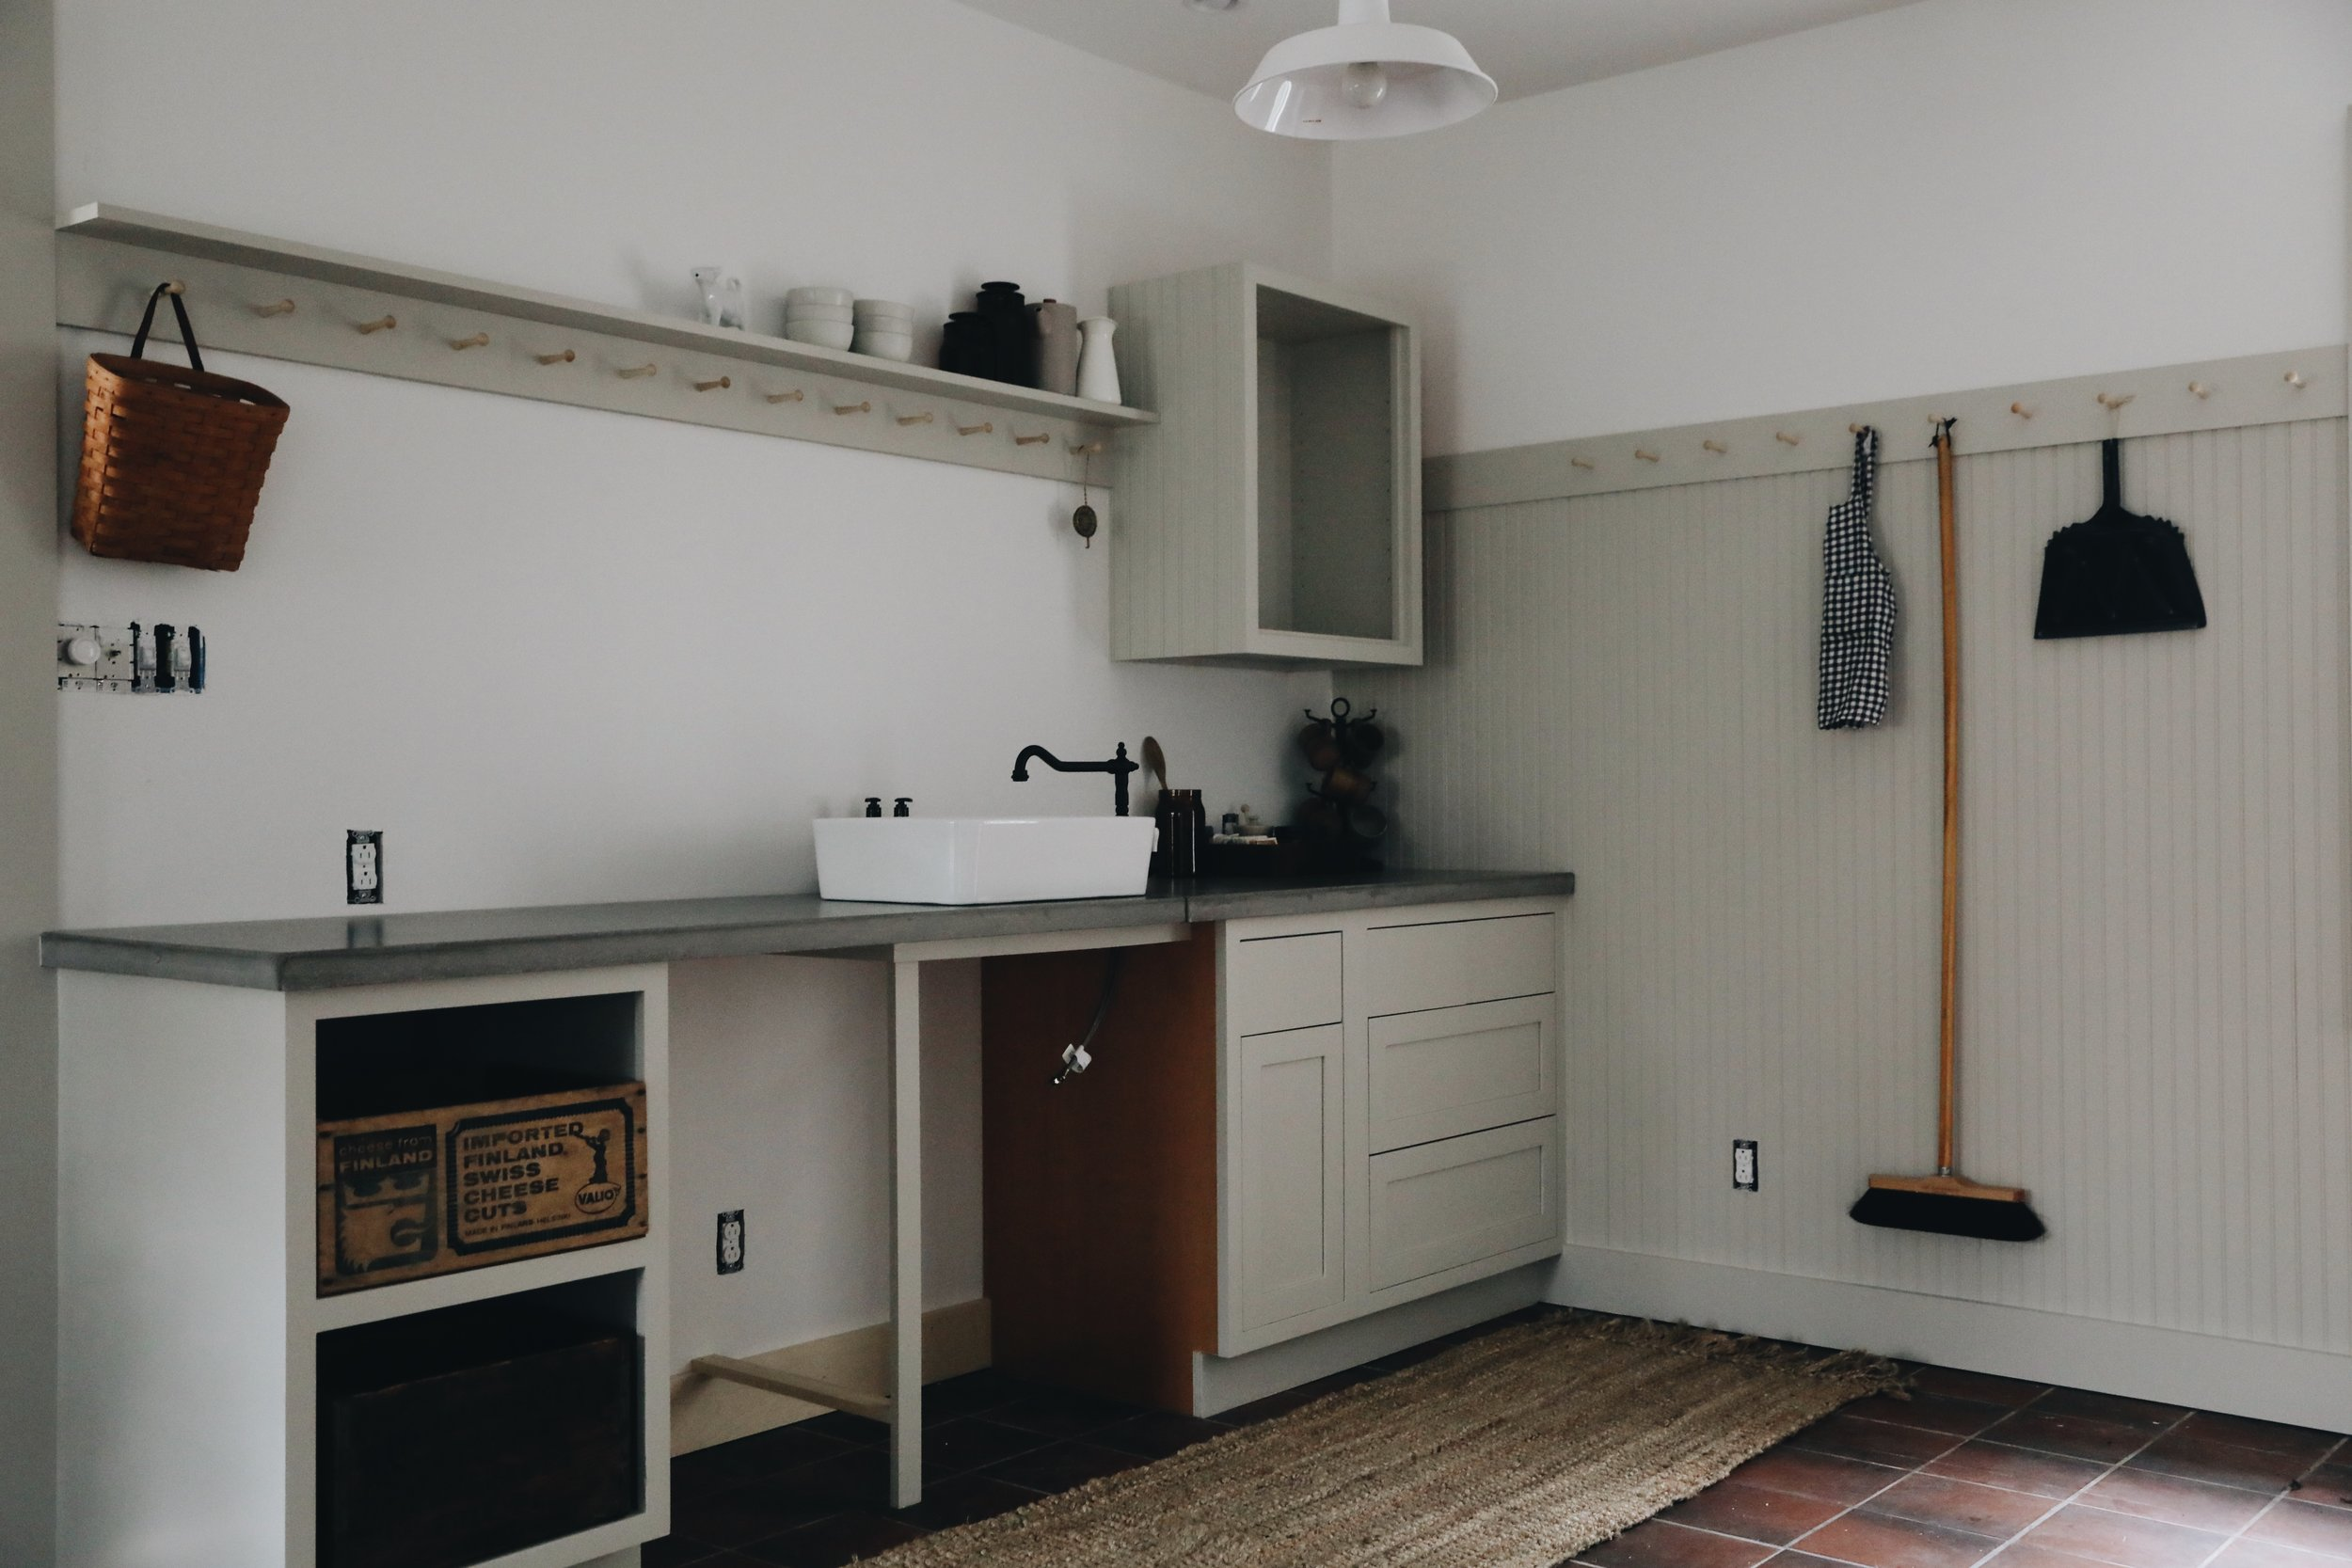 "our friend ben gilliom made the concrete countertops, which seemed like the most utilitarian option for a kids' craft space. paint color on cabinets and wainscoting is ""gatherings"" by magnolia."